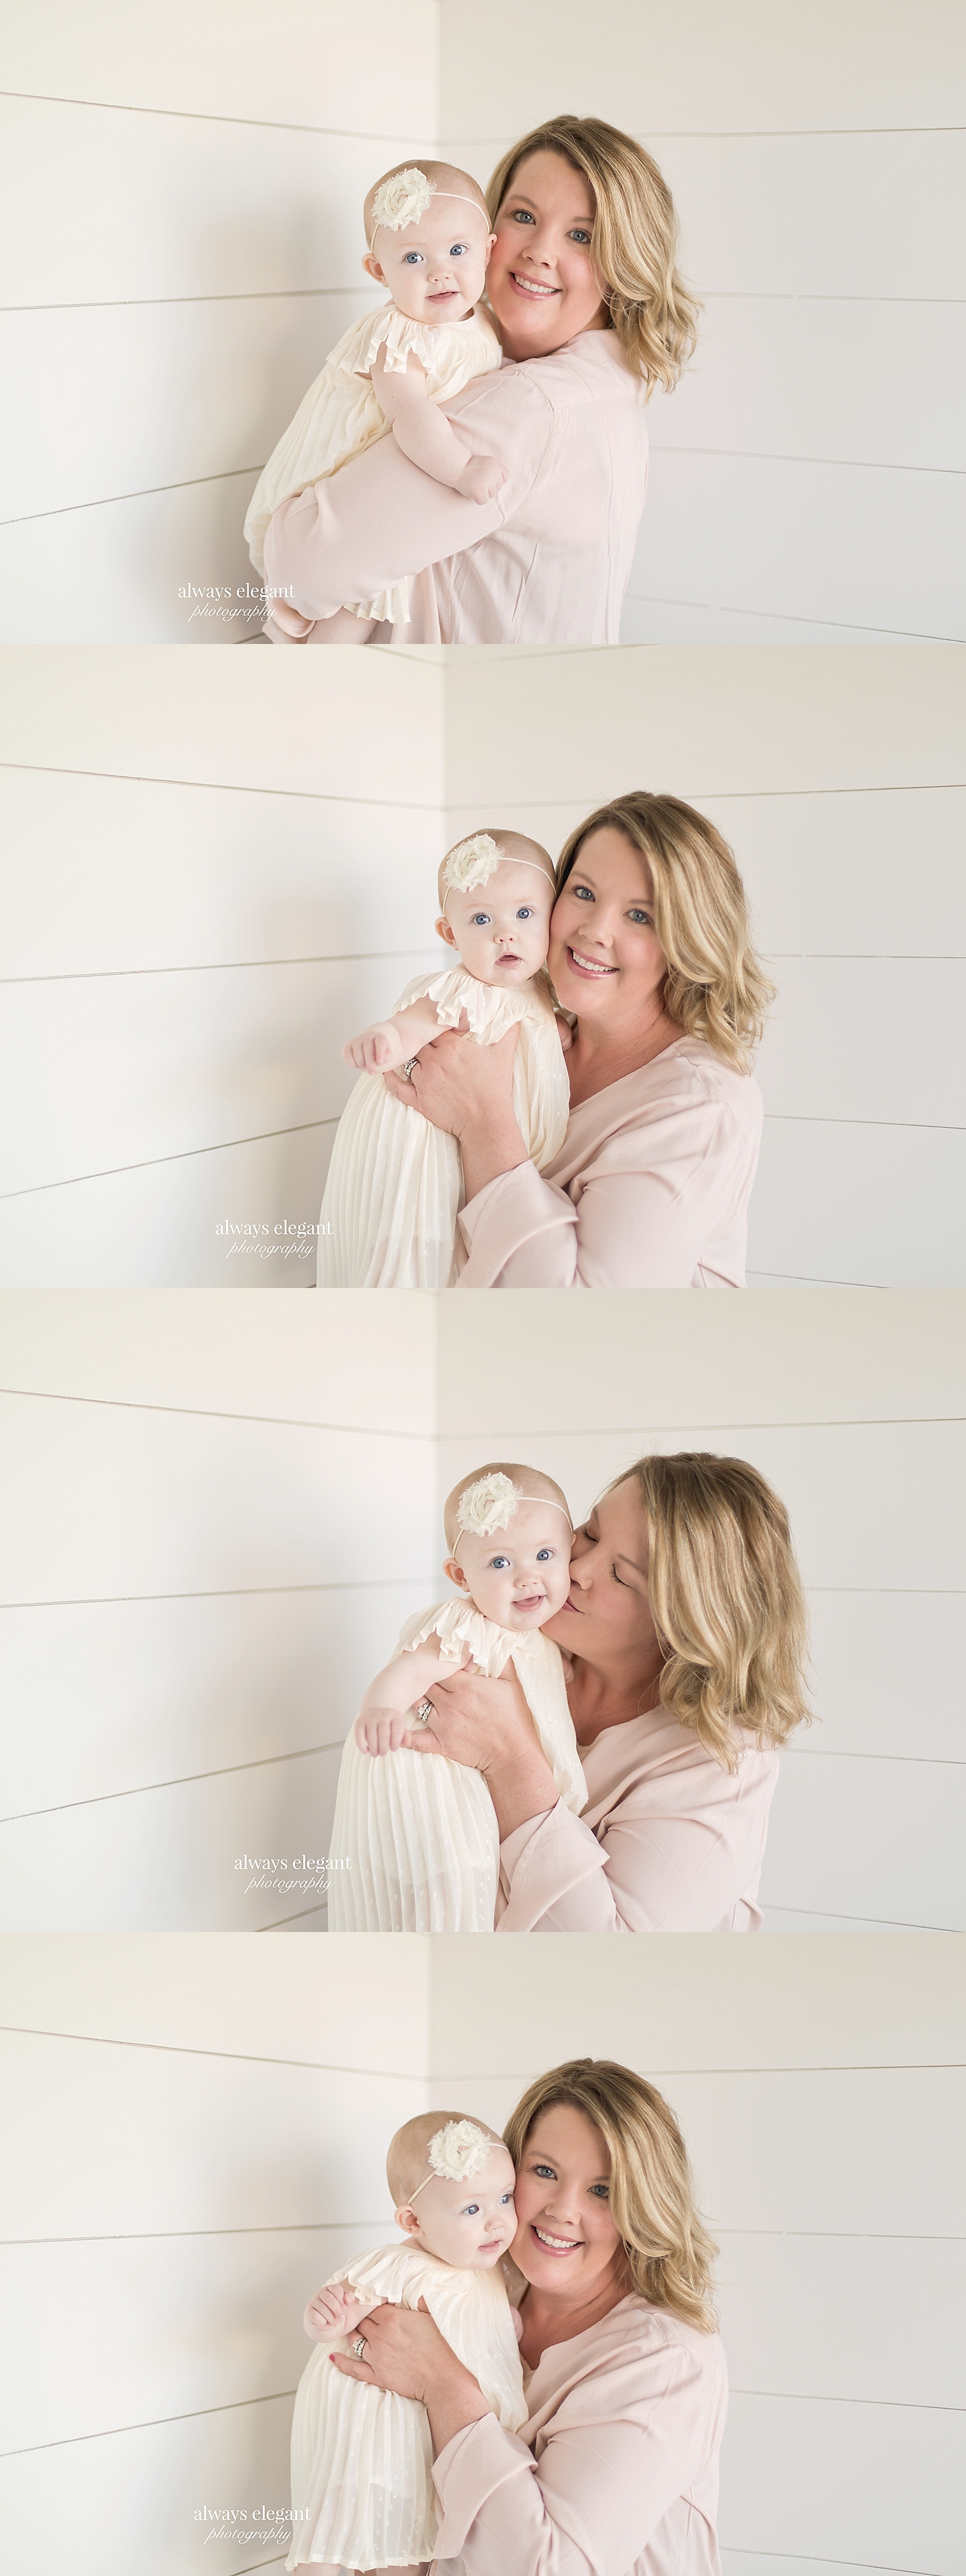 A_Motherhood_Event_Mommy_And_Me_Mini_Session_0001.jpg